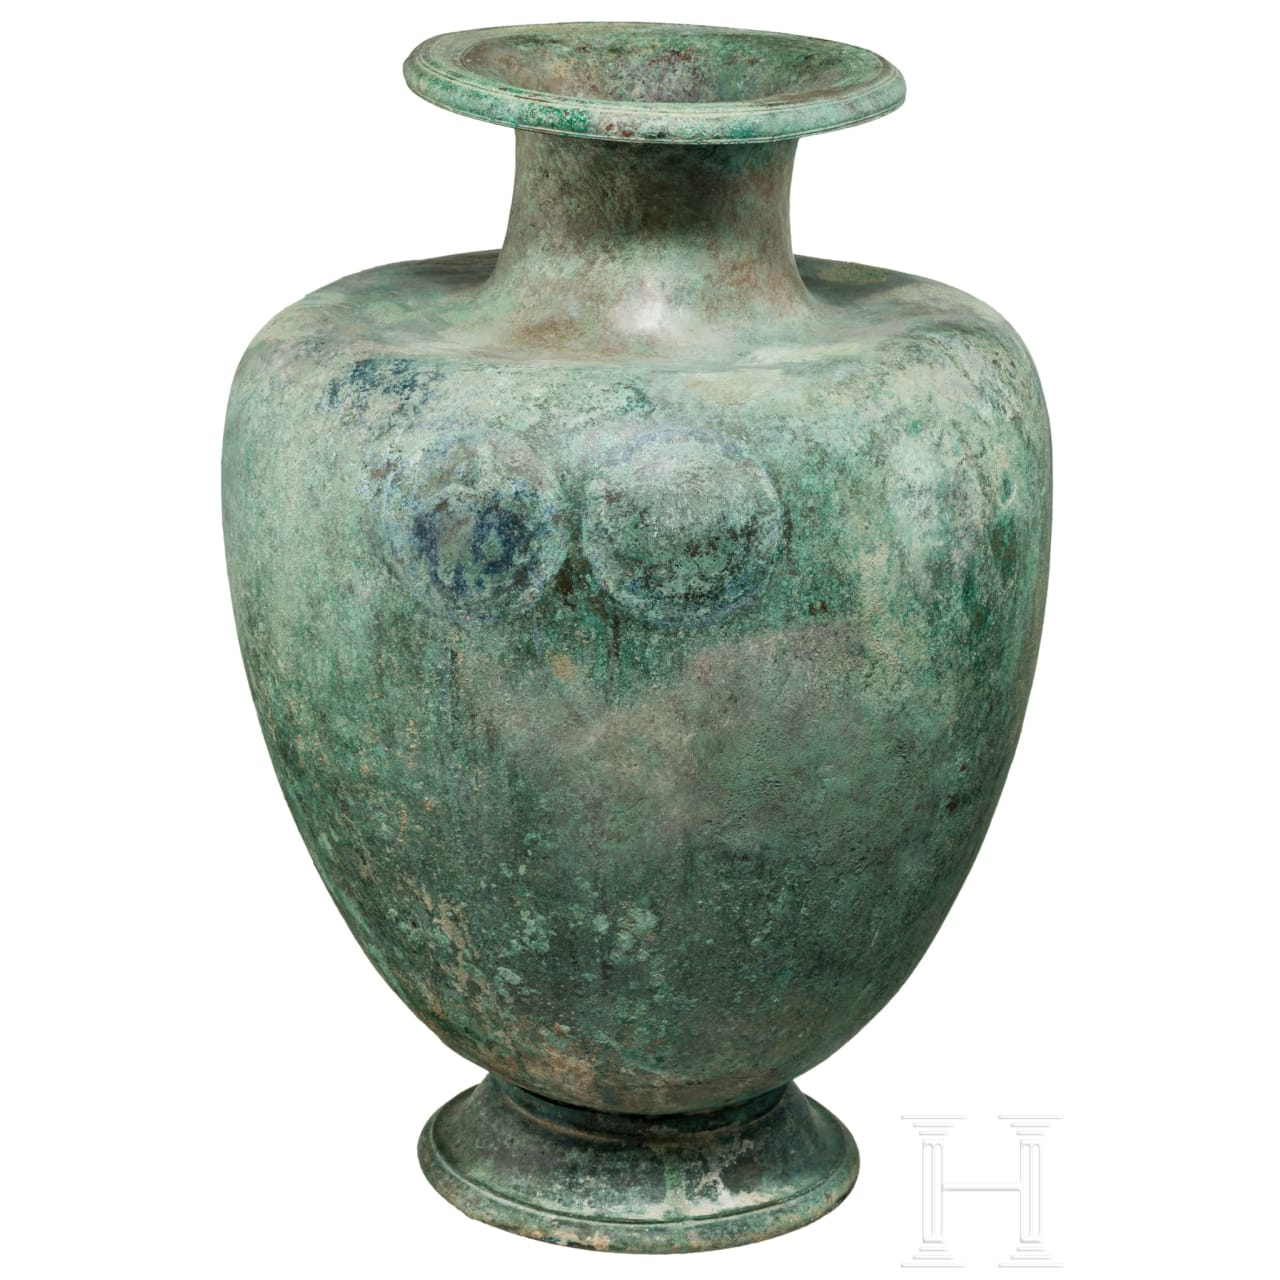 A Greek bronze hydria, 5th century B.C.